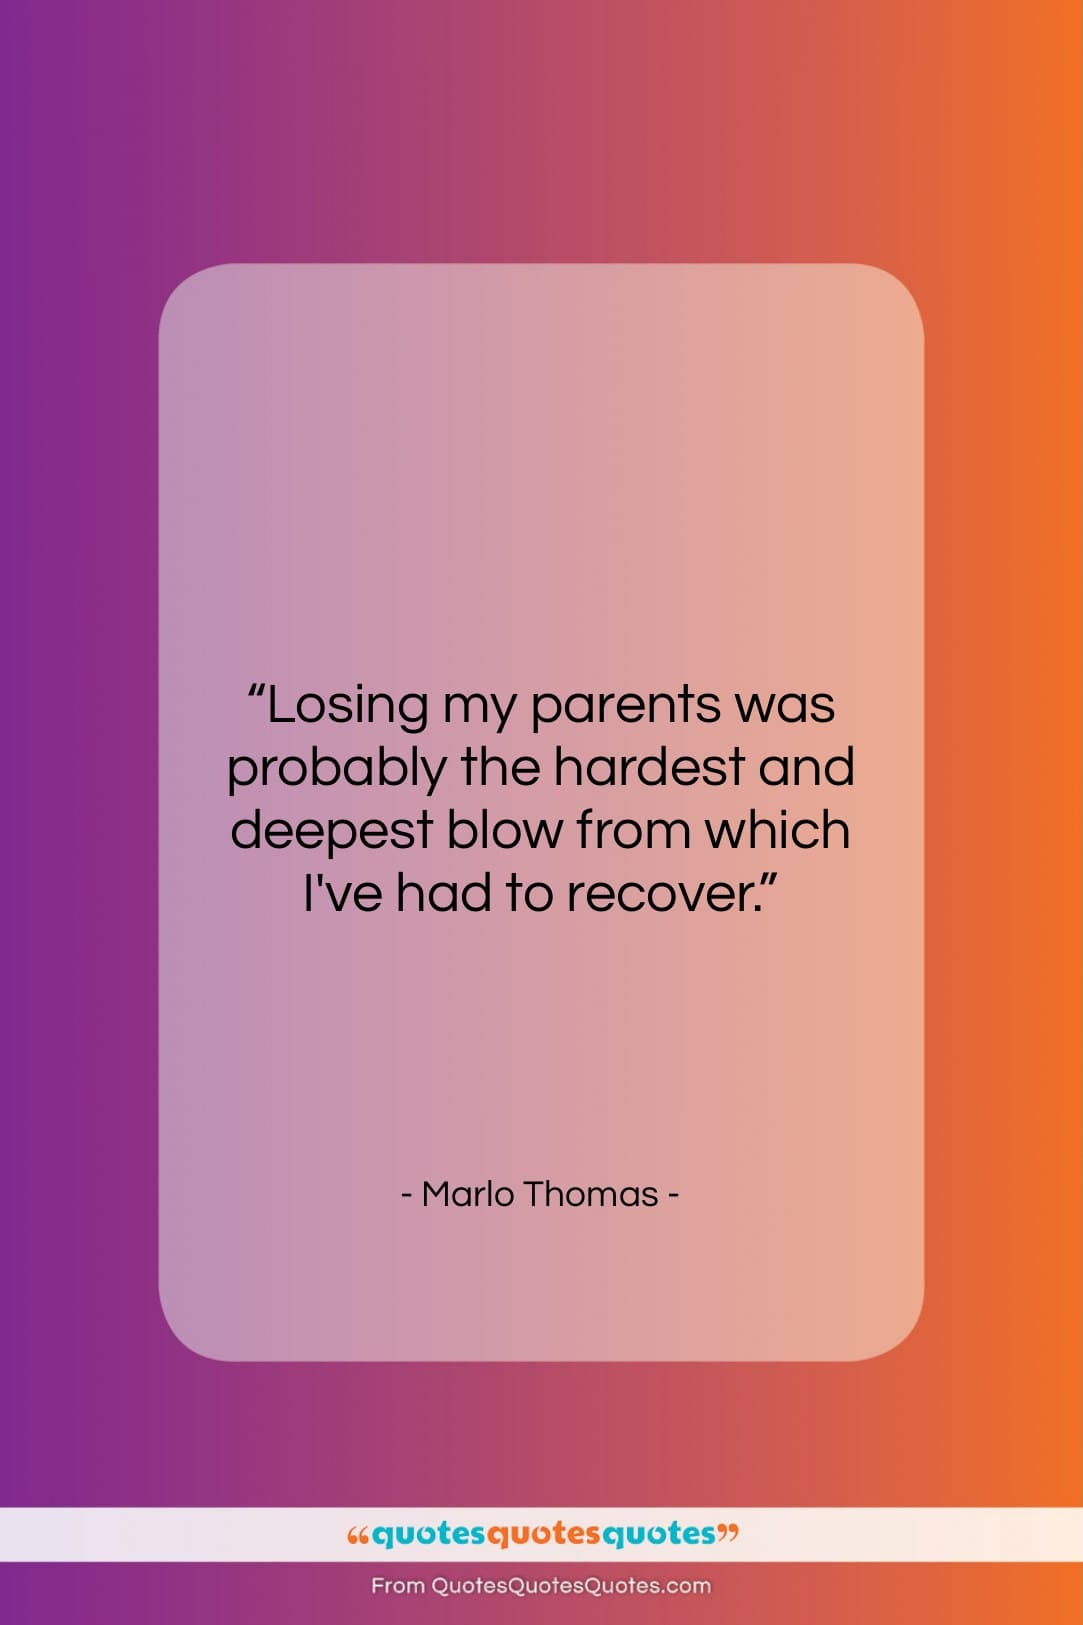 """Marlo Thomas quote: """"Losing my parents was probably the hardest…""""- at QuotesQuotesQuotes.com"""